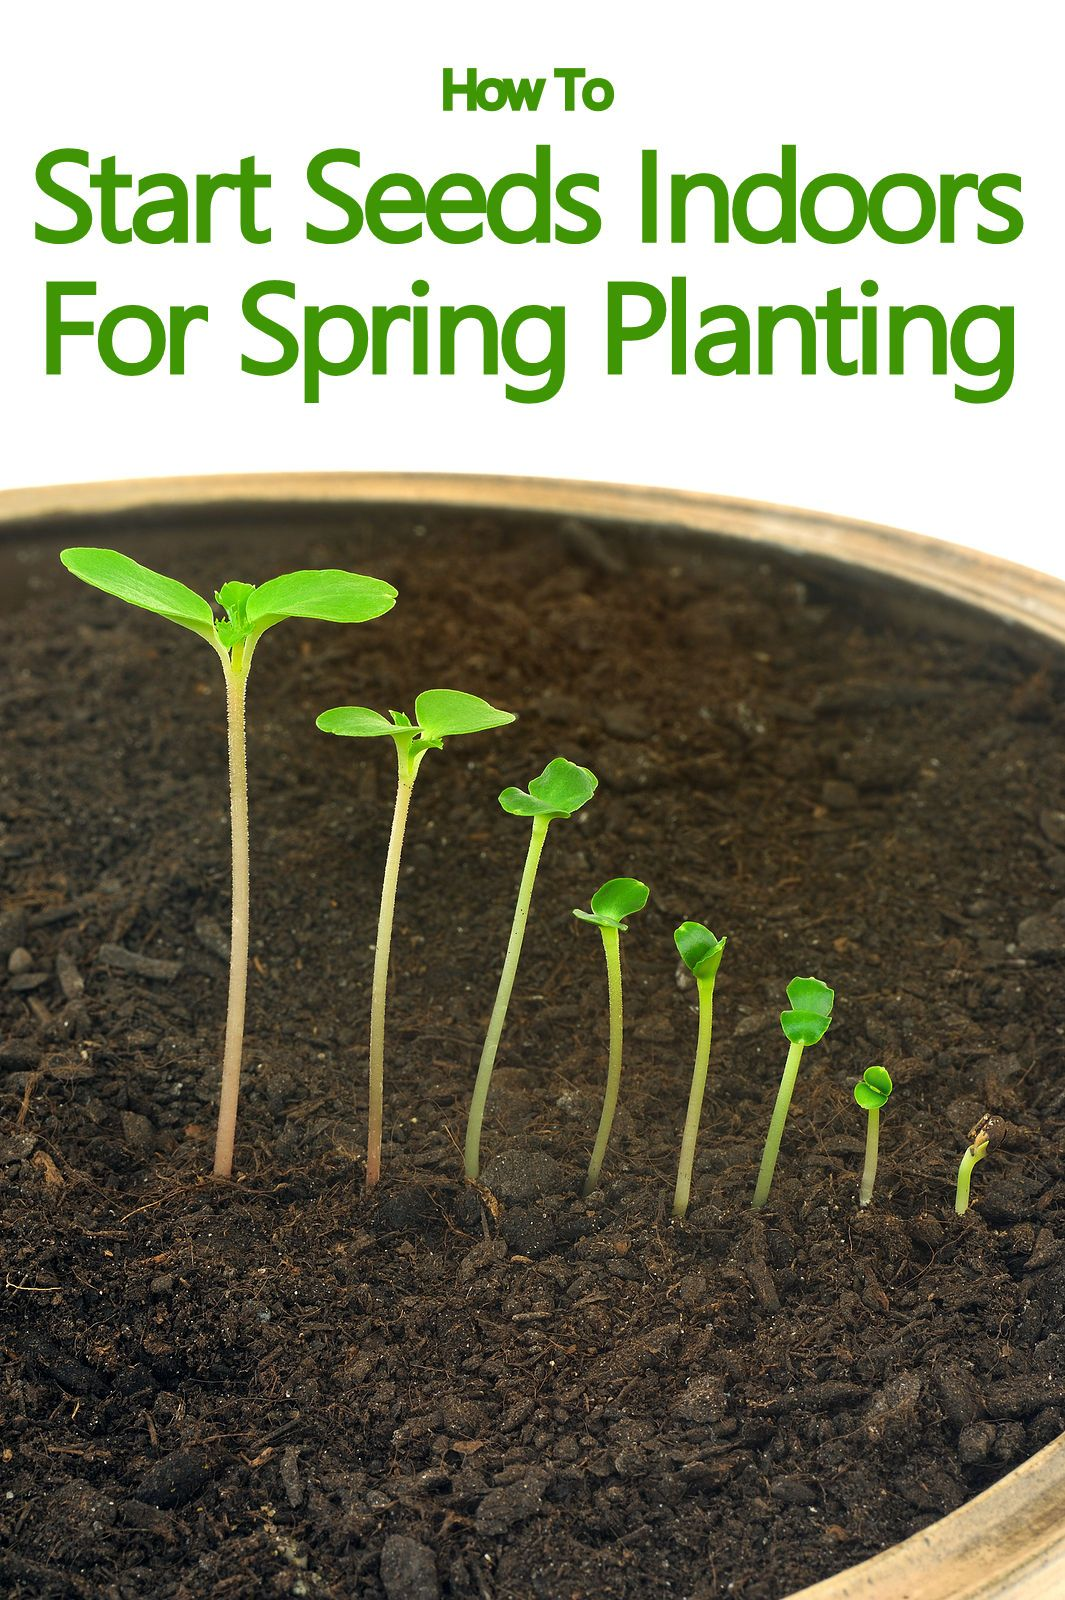 How To Start Seeds Indoors For Spring Planting